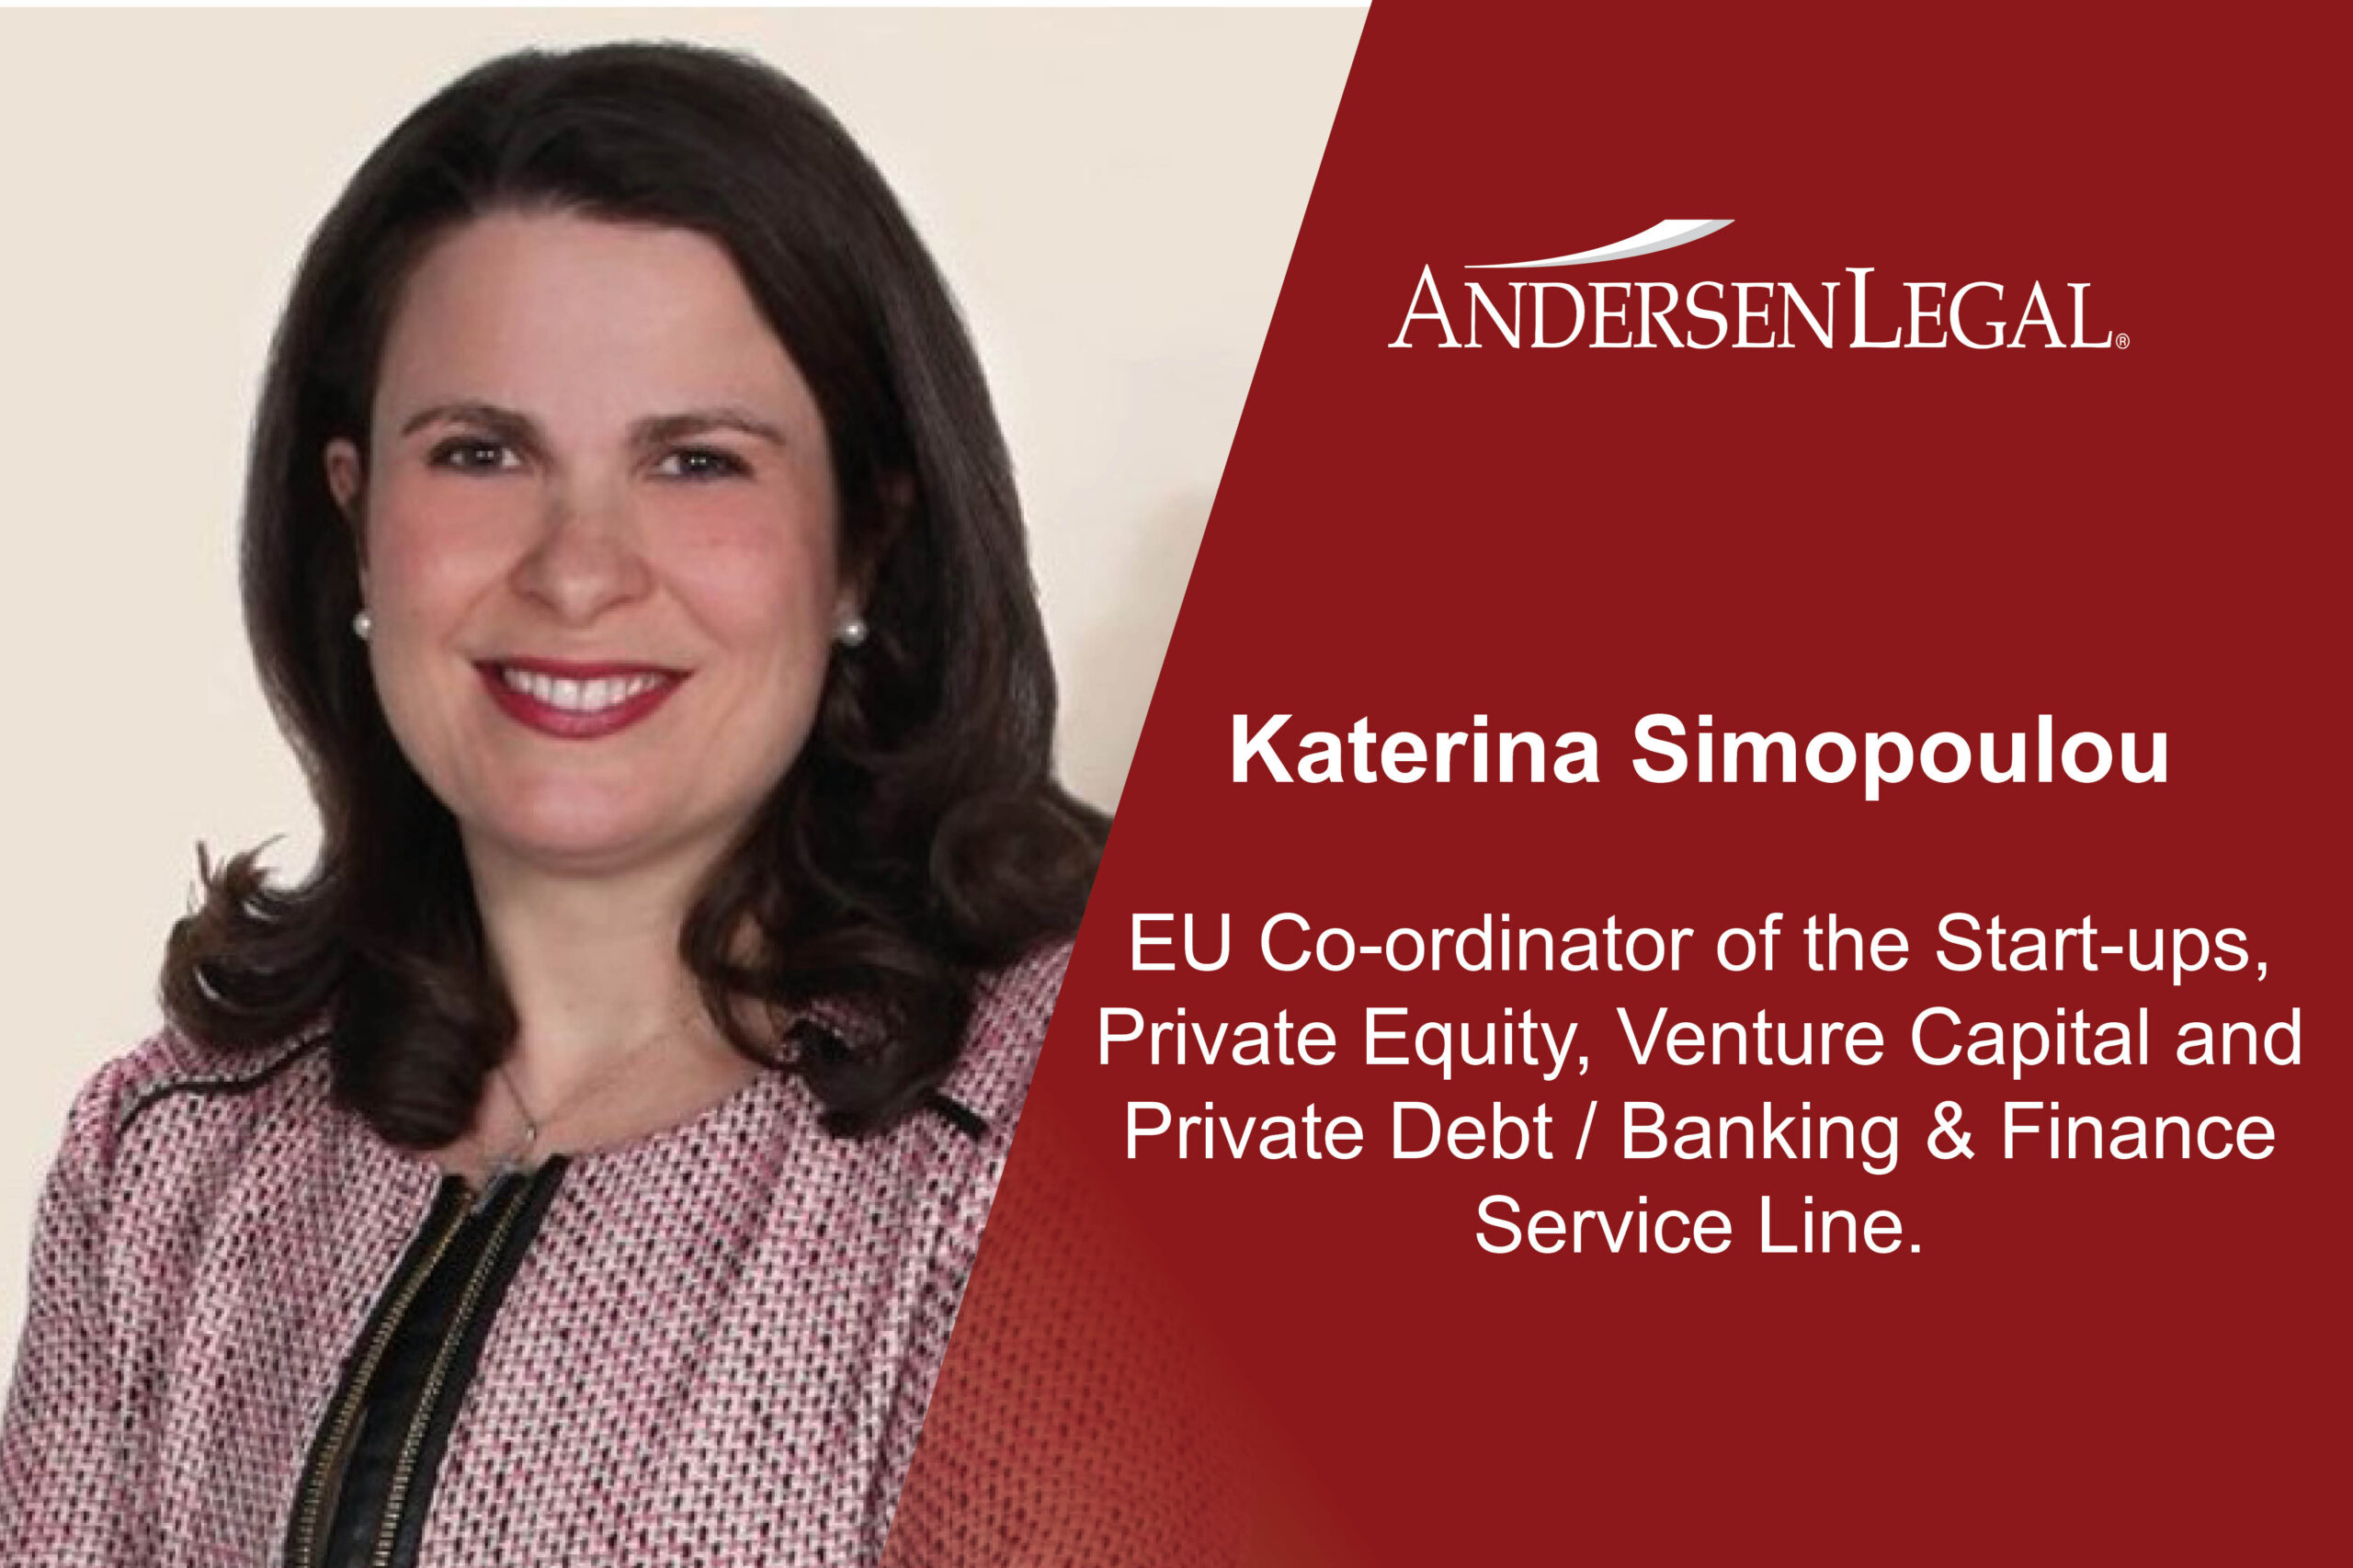 Katerina Simopoulou: EU Co-ordinator of the Start-ups, Private Equity, Venture Capital and Private Debt